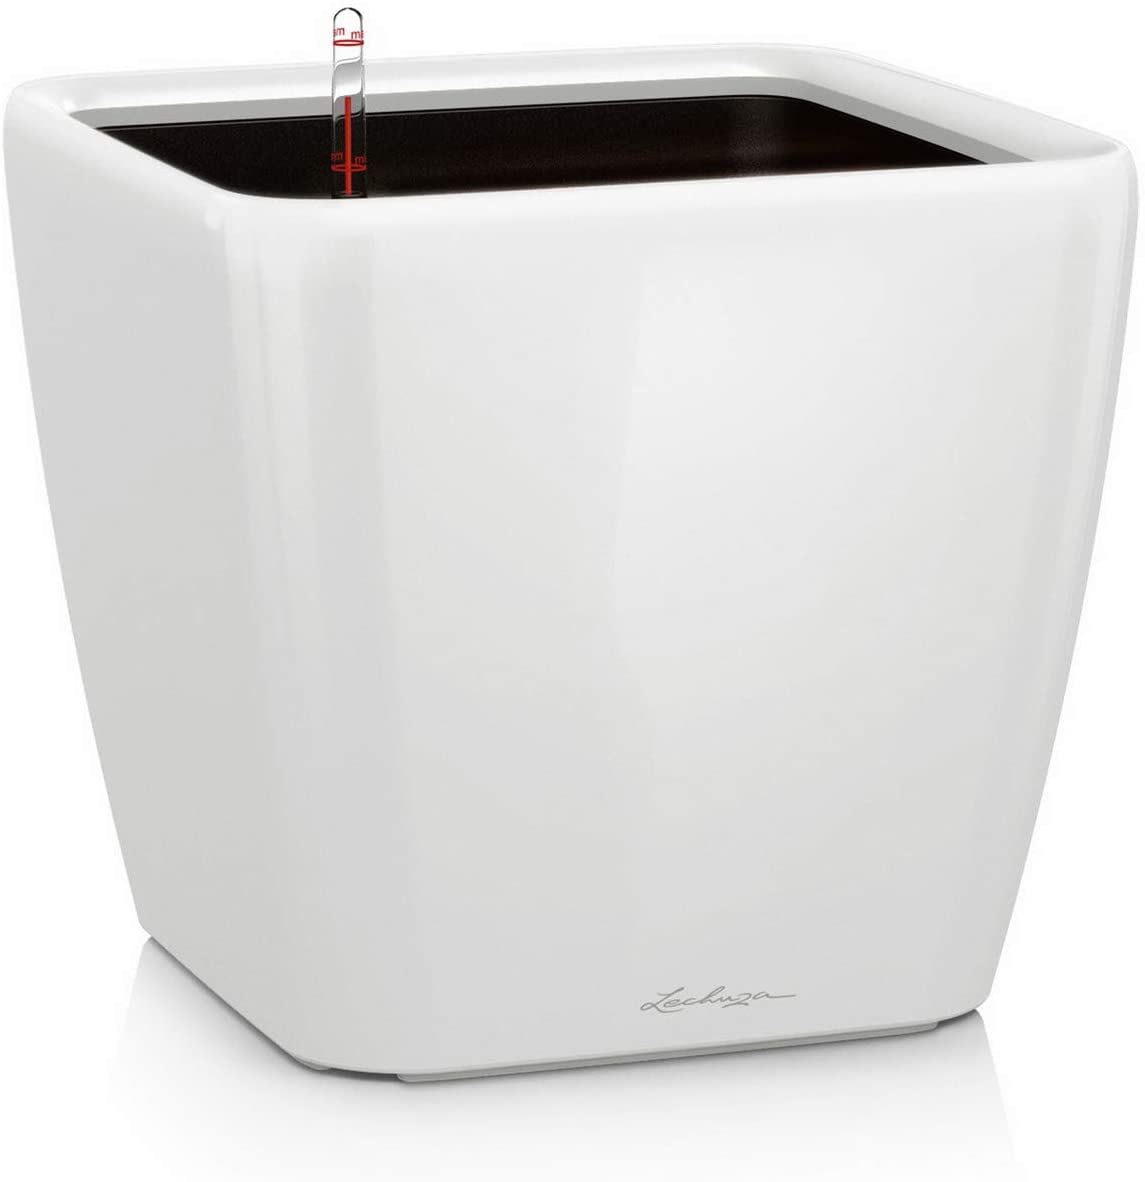 LECHUZA Quadro LS 35 Self Watering Planter Garden Flower Plant Pot Indoor/Outdoor Floor Planter with Drainage Hole and Plant Substrate Poly Resin H33 L35 W35 cm White High-Gloss